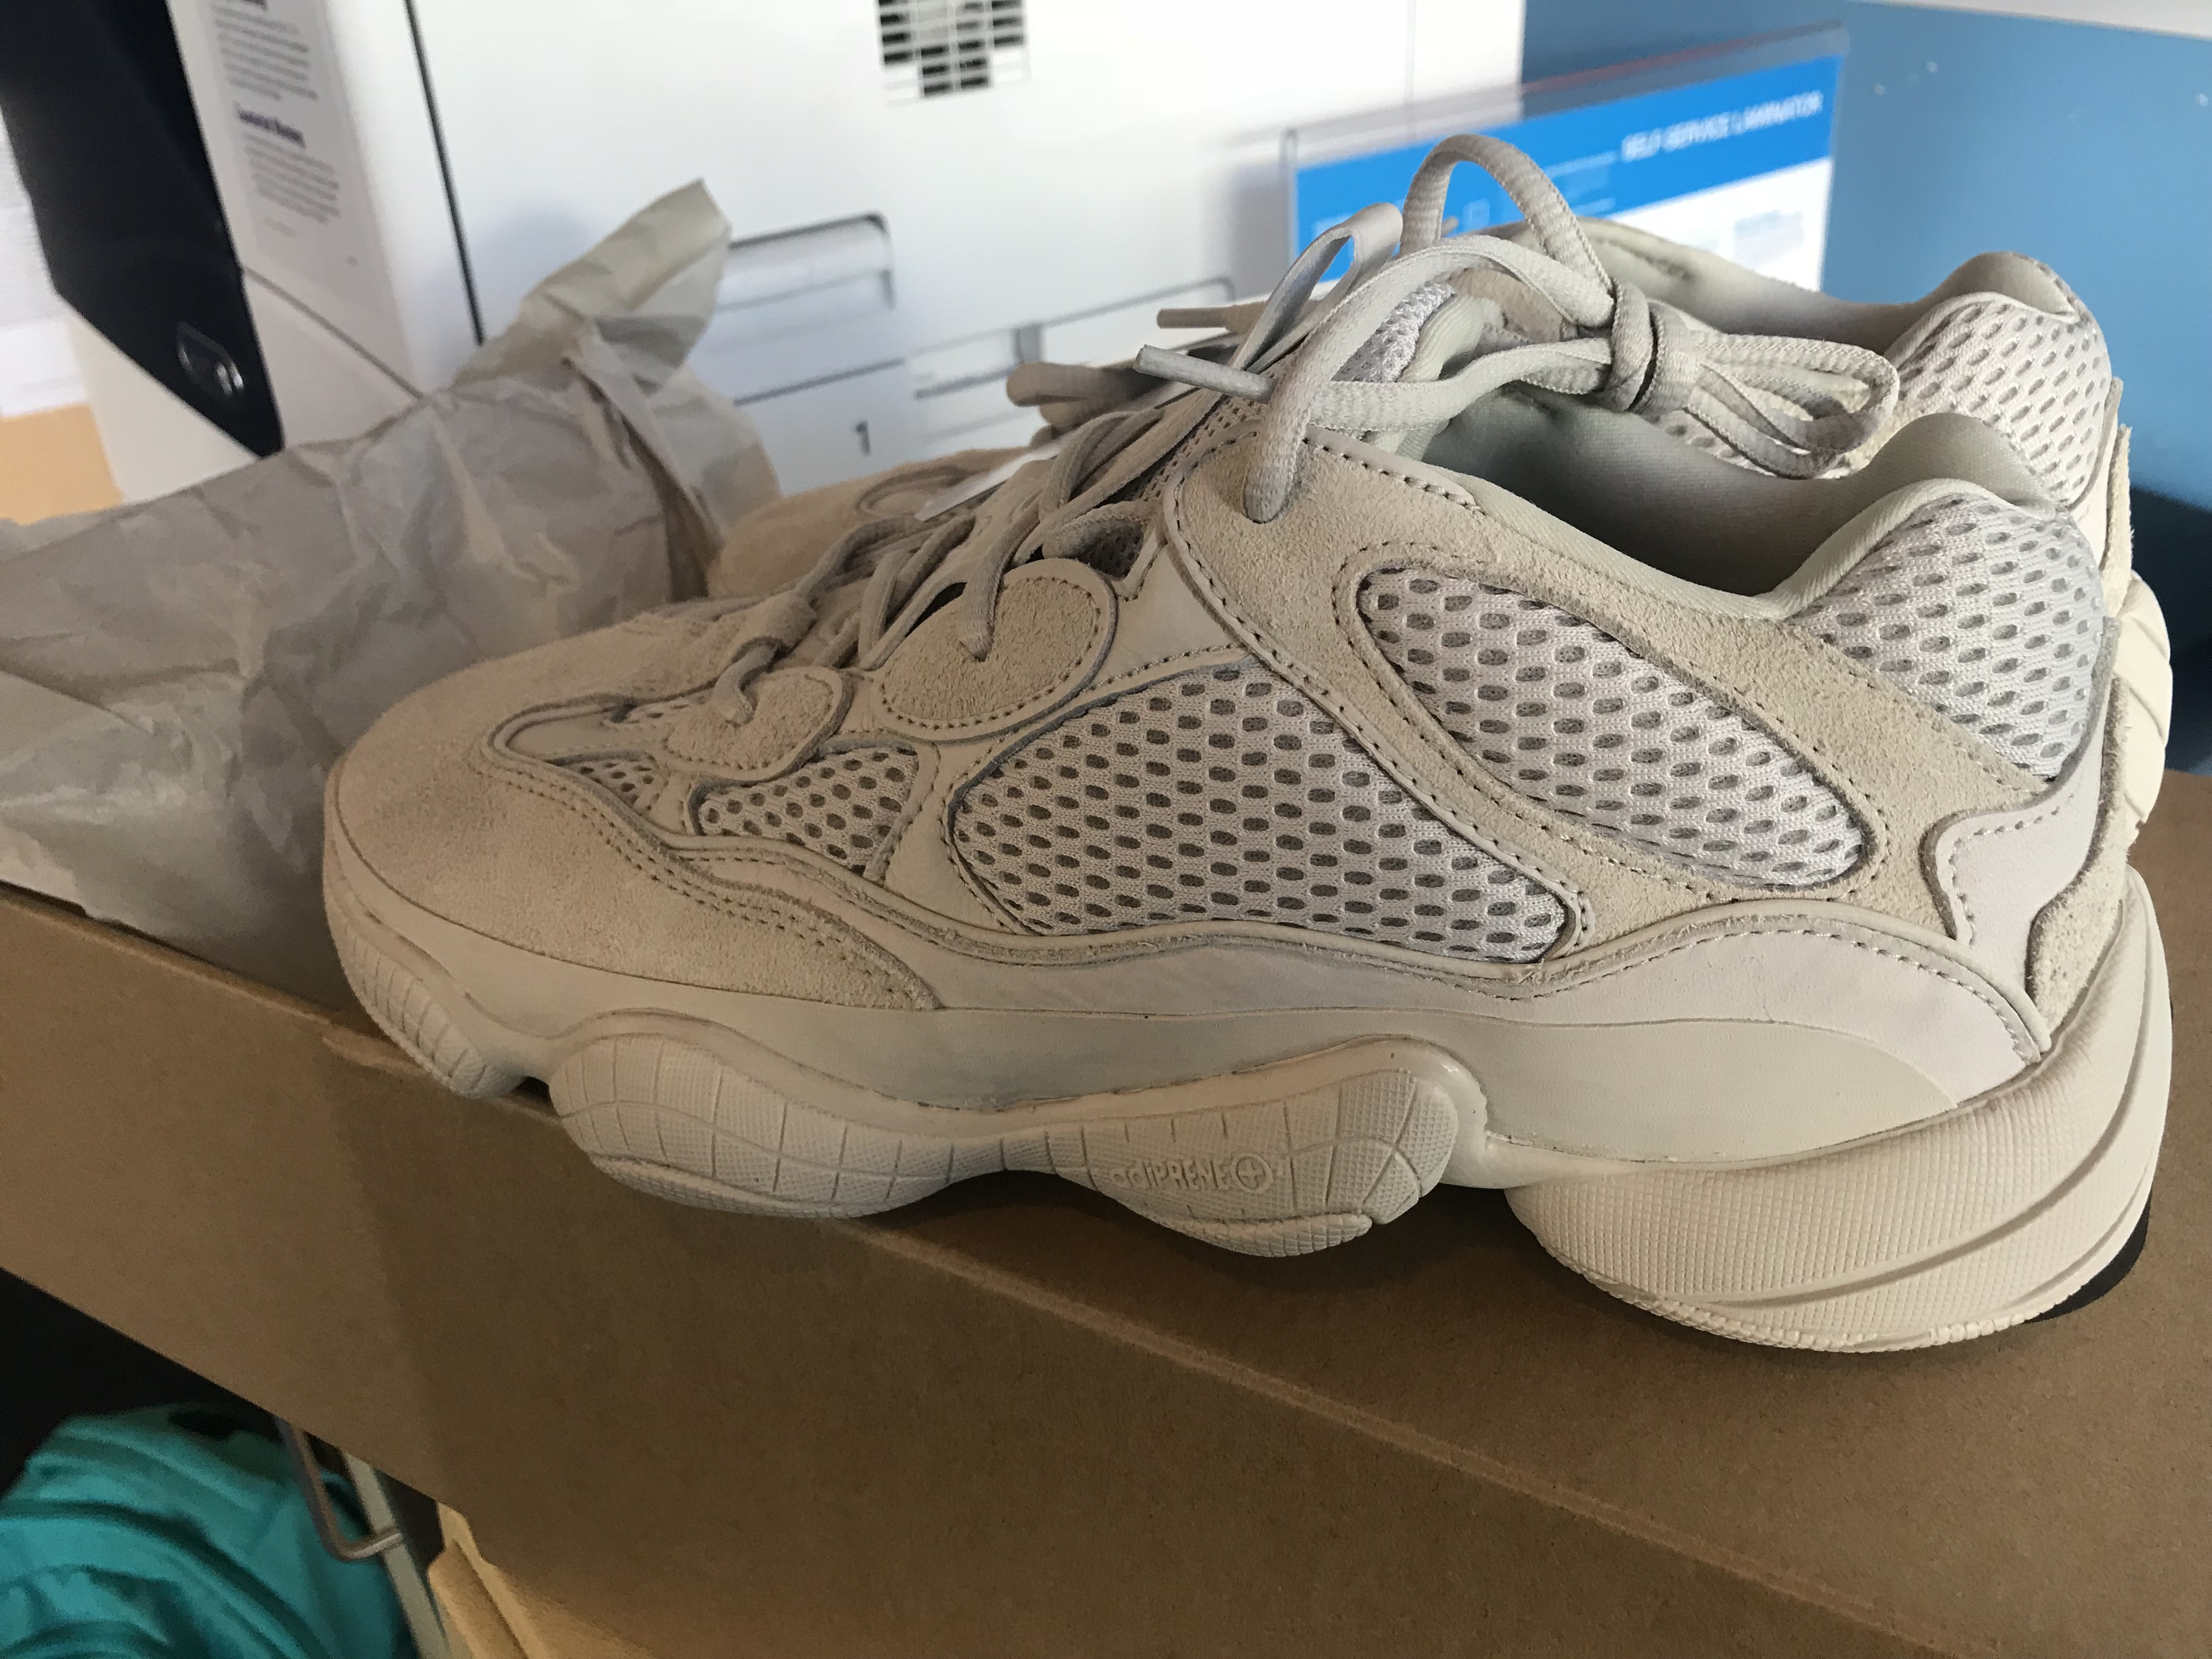 newest collection e8ec2 b1e59 Adidas Yeezy 500 Blush Size US 9 CONFIRMED ORDER WAVE RUNNER YEEZY SUPPLY